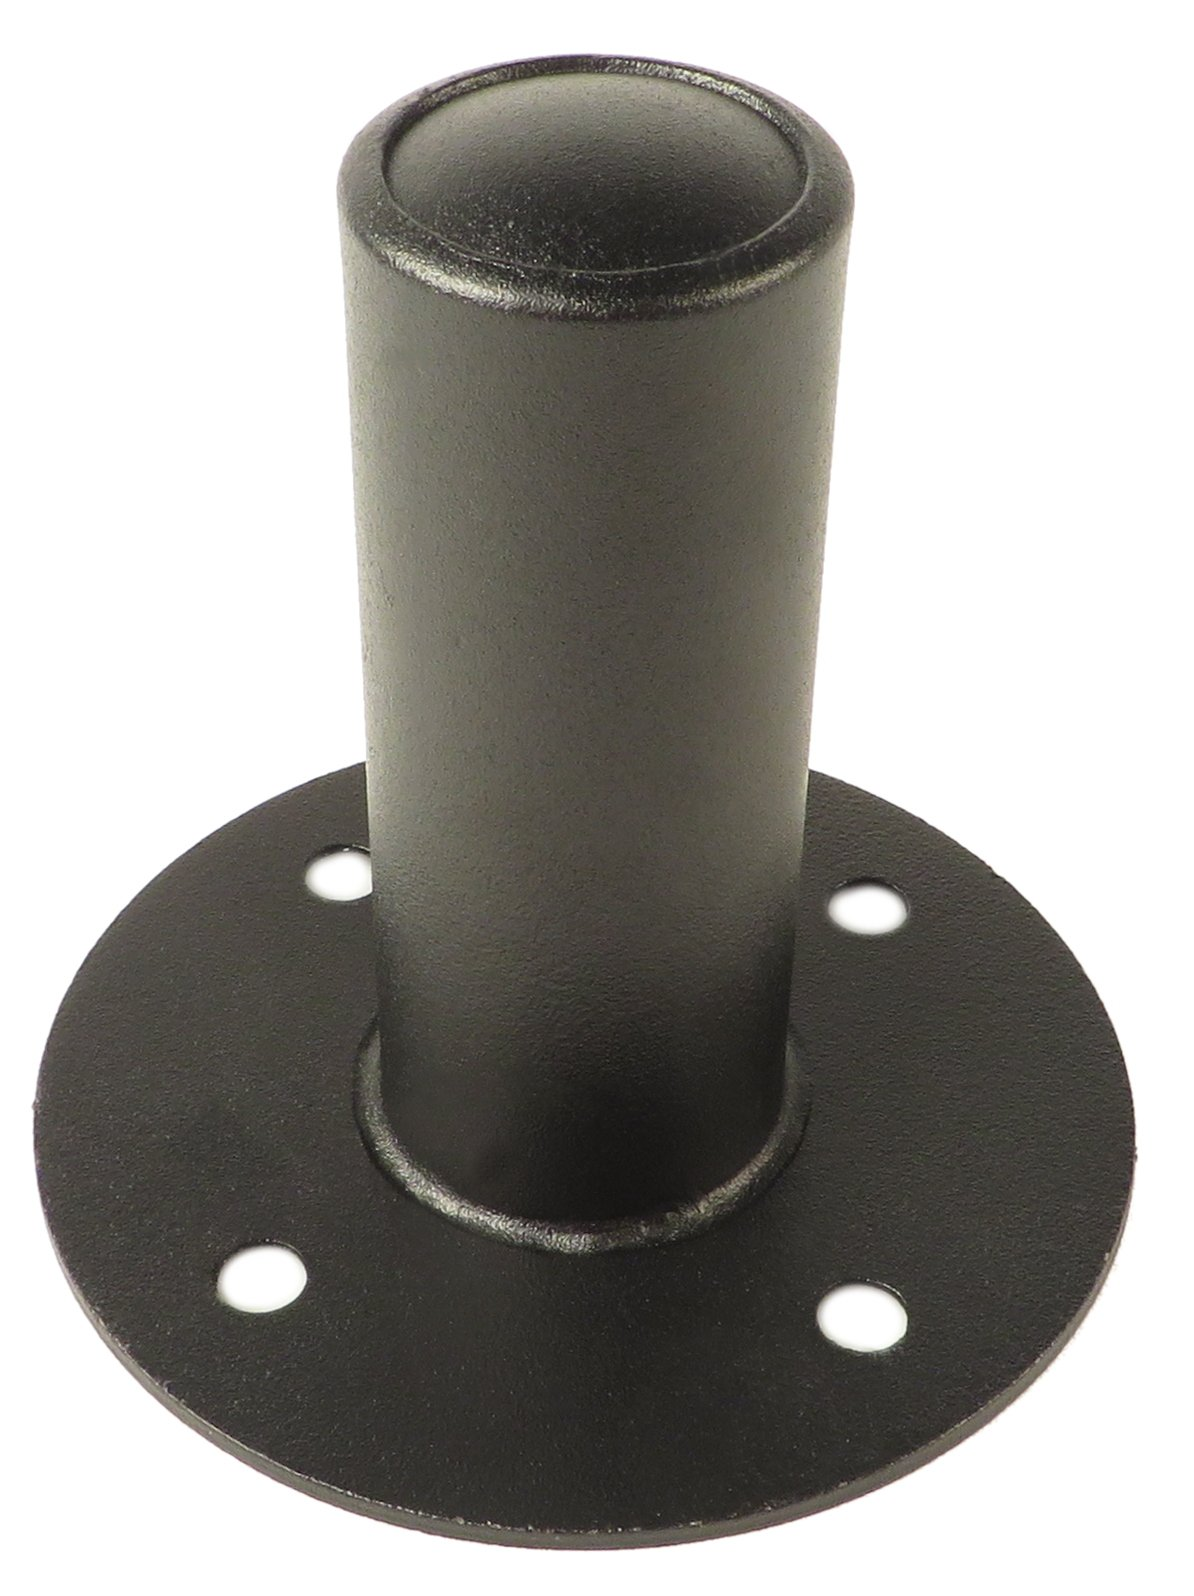 Pole Cup for 8483, EF500P, LS800P